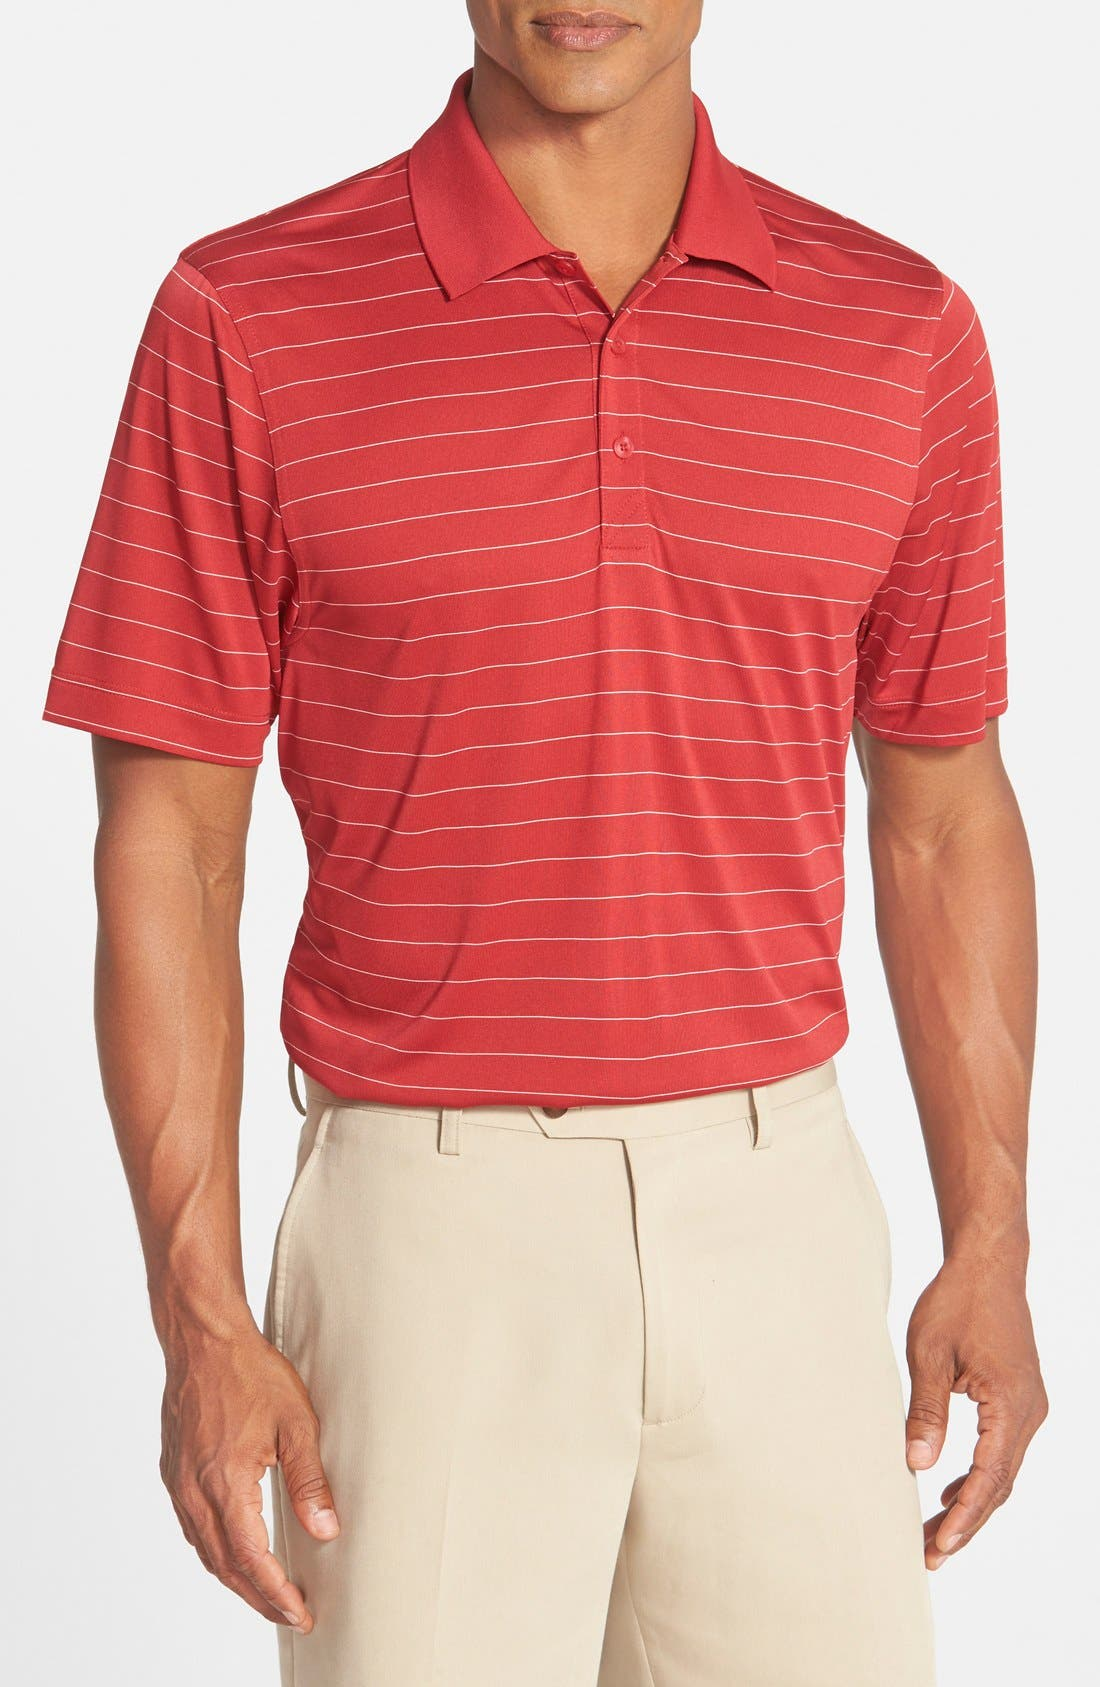 Main Image - Cutter & Buck Franklin DryTec Polo (Online Only)